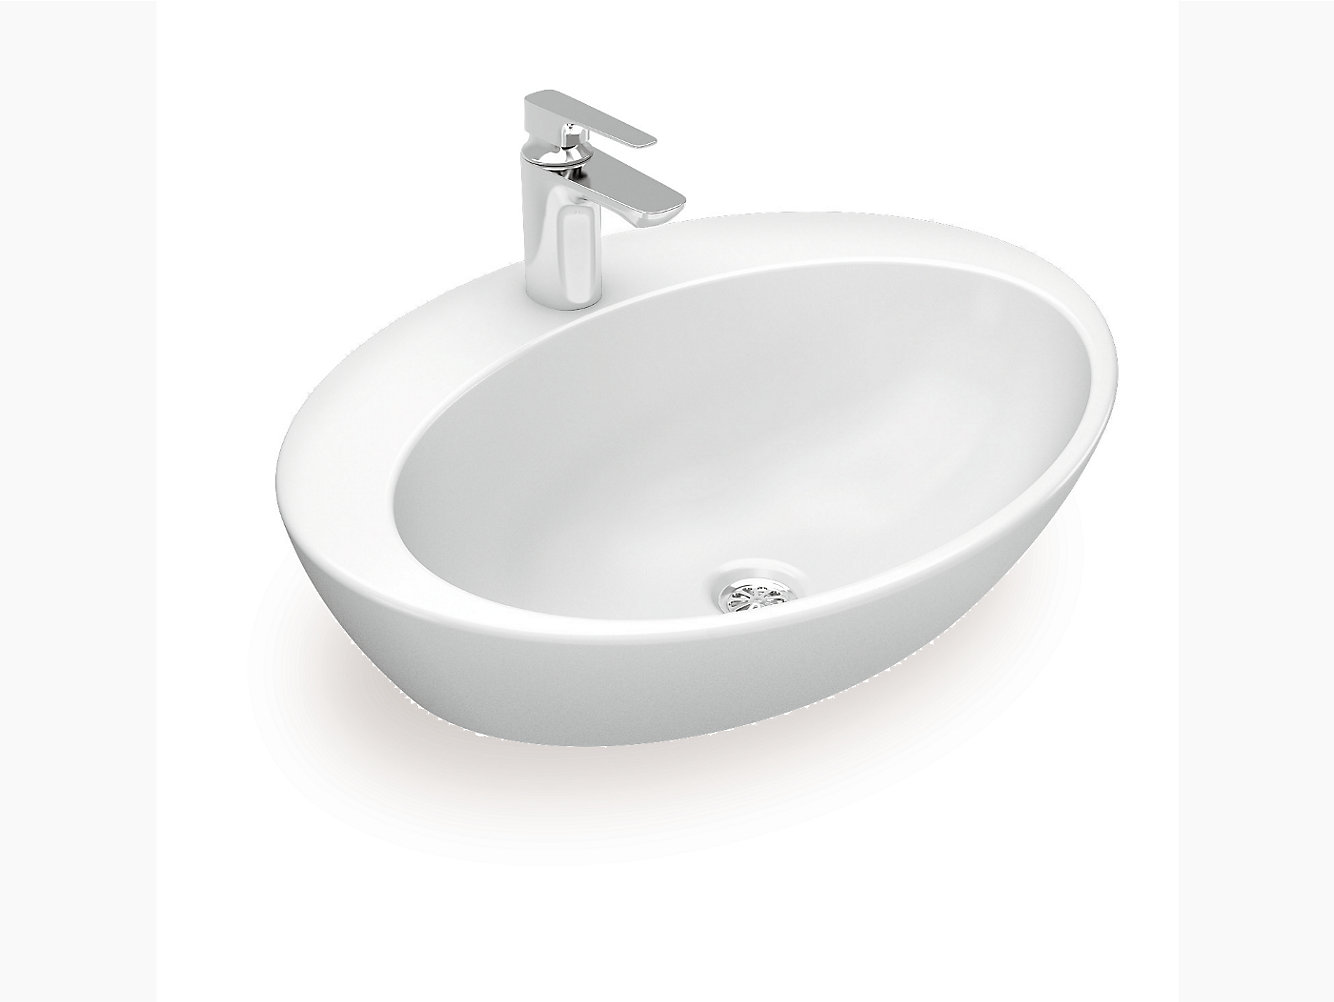 karess vessel lavatory with single faucet hole k 2764t 1 kohler